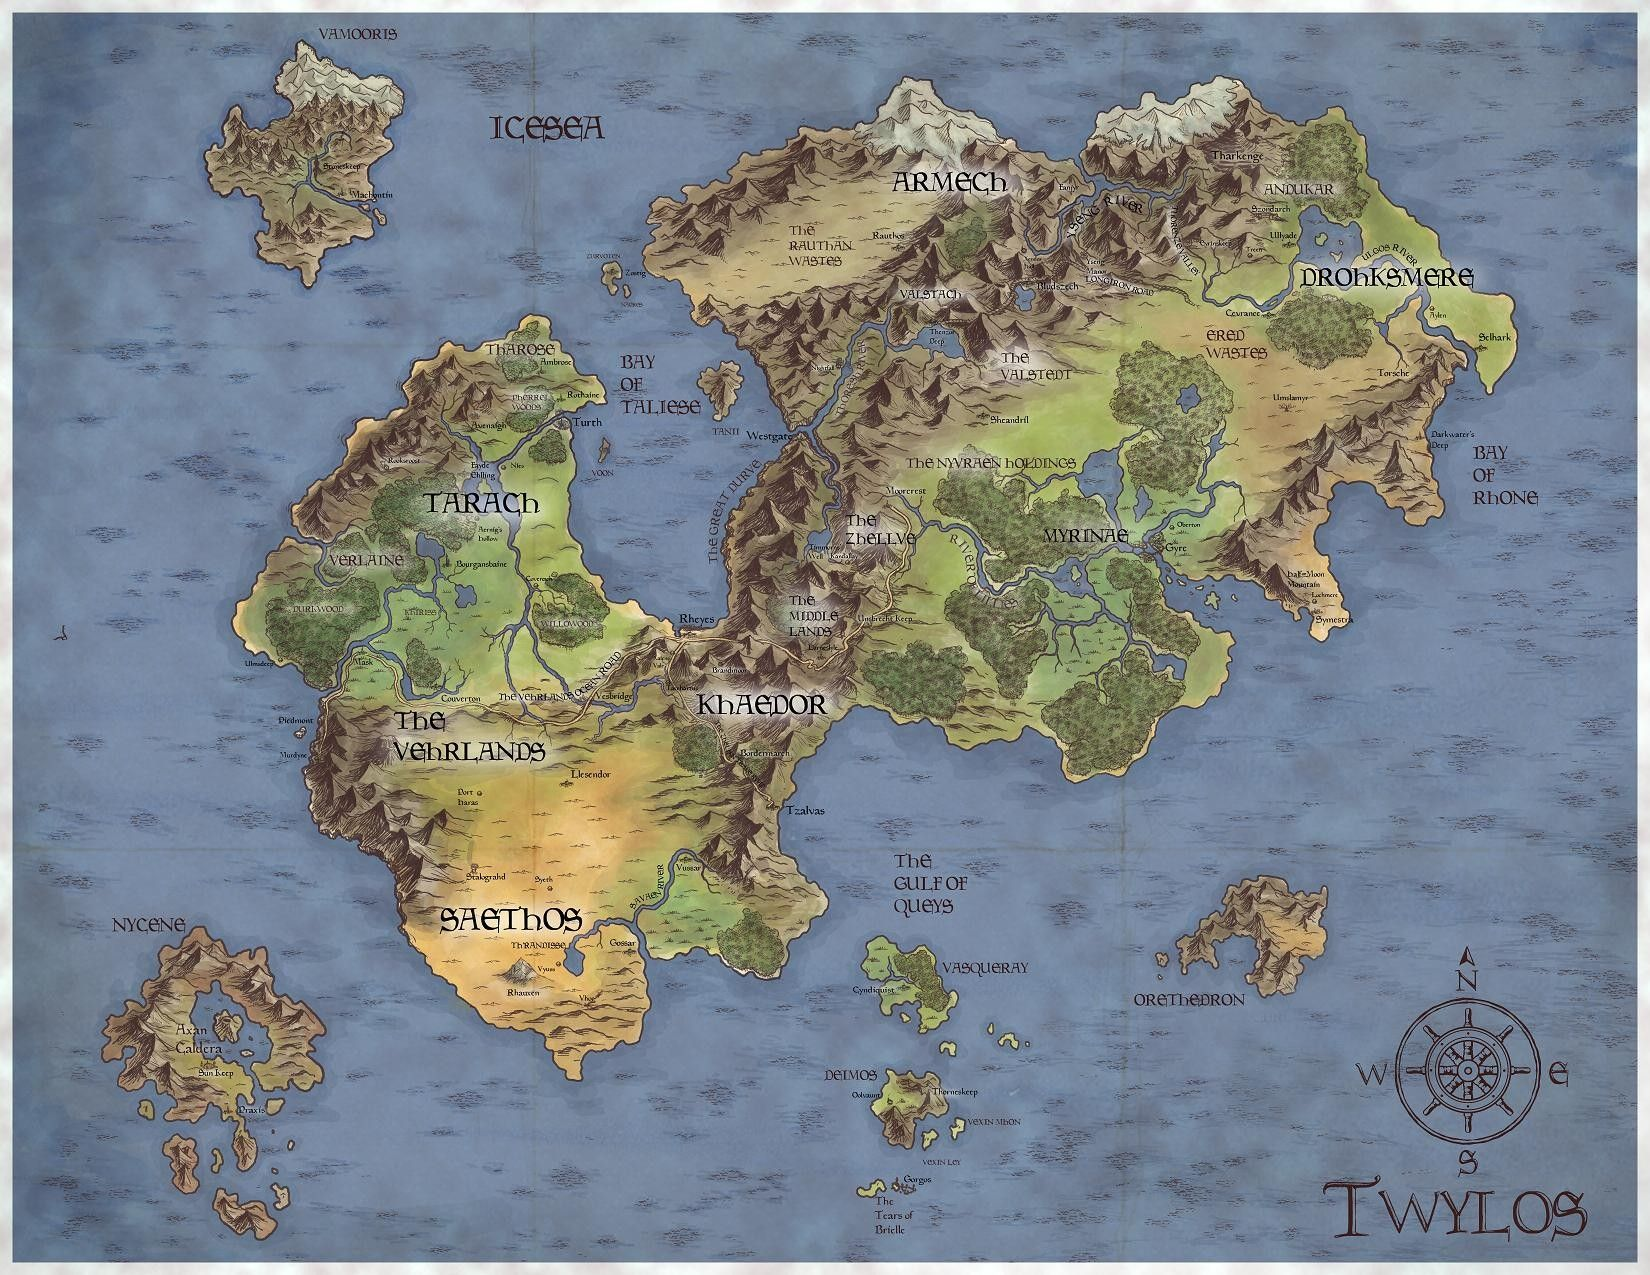 Pin by chris armstrong on fantasy maps pinterest fantasy map deviantart is the worlds largest online social community for artists and art enthusiasts allowing people to connect through the creation and sharing of gumiabroncs Images